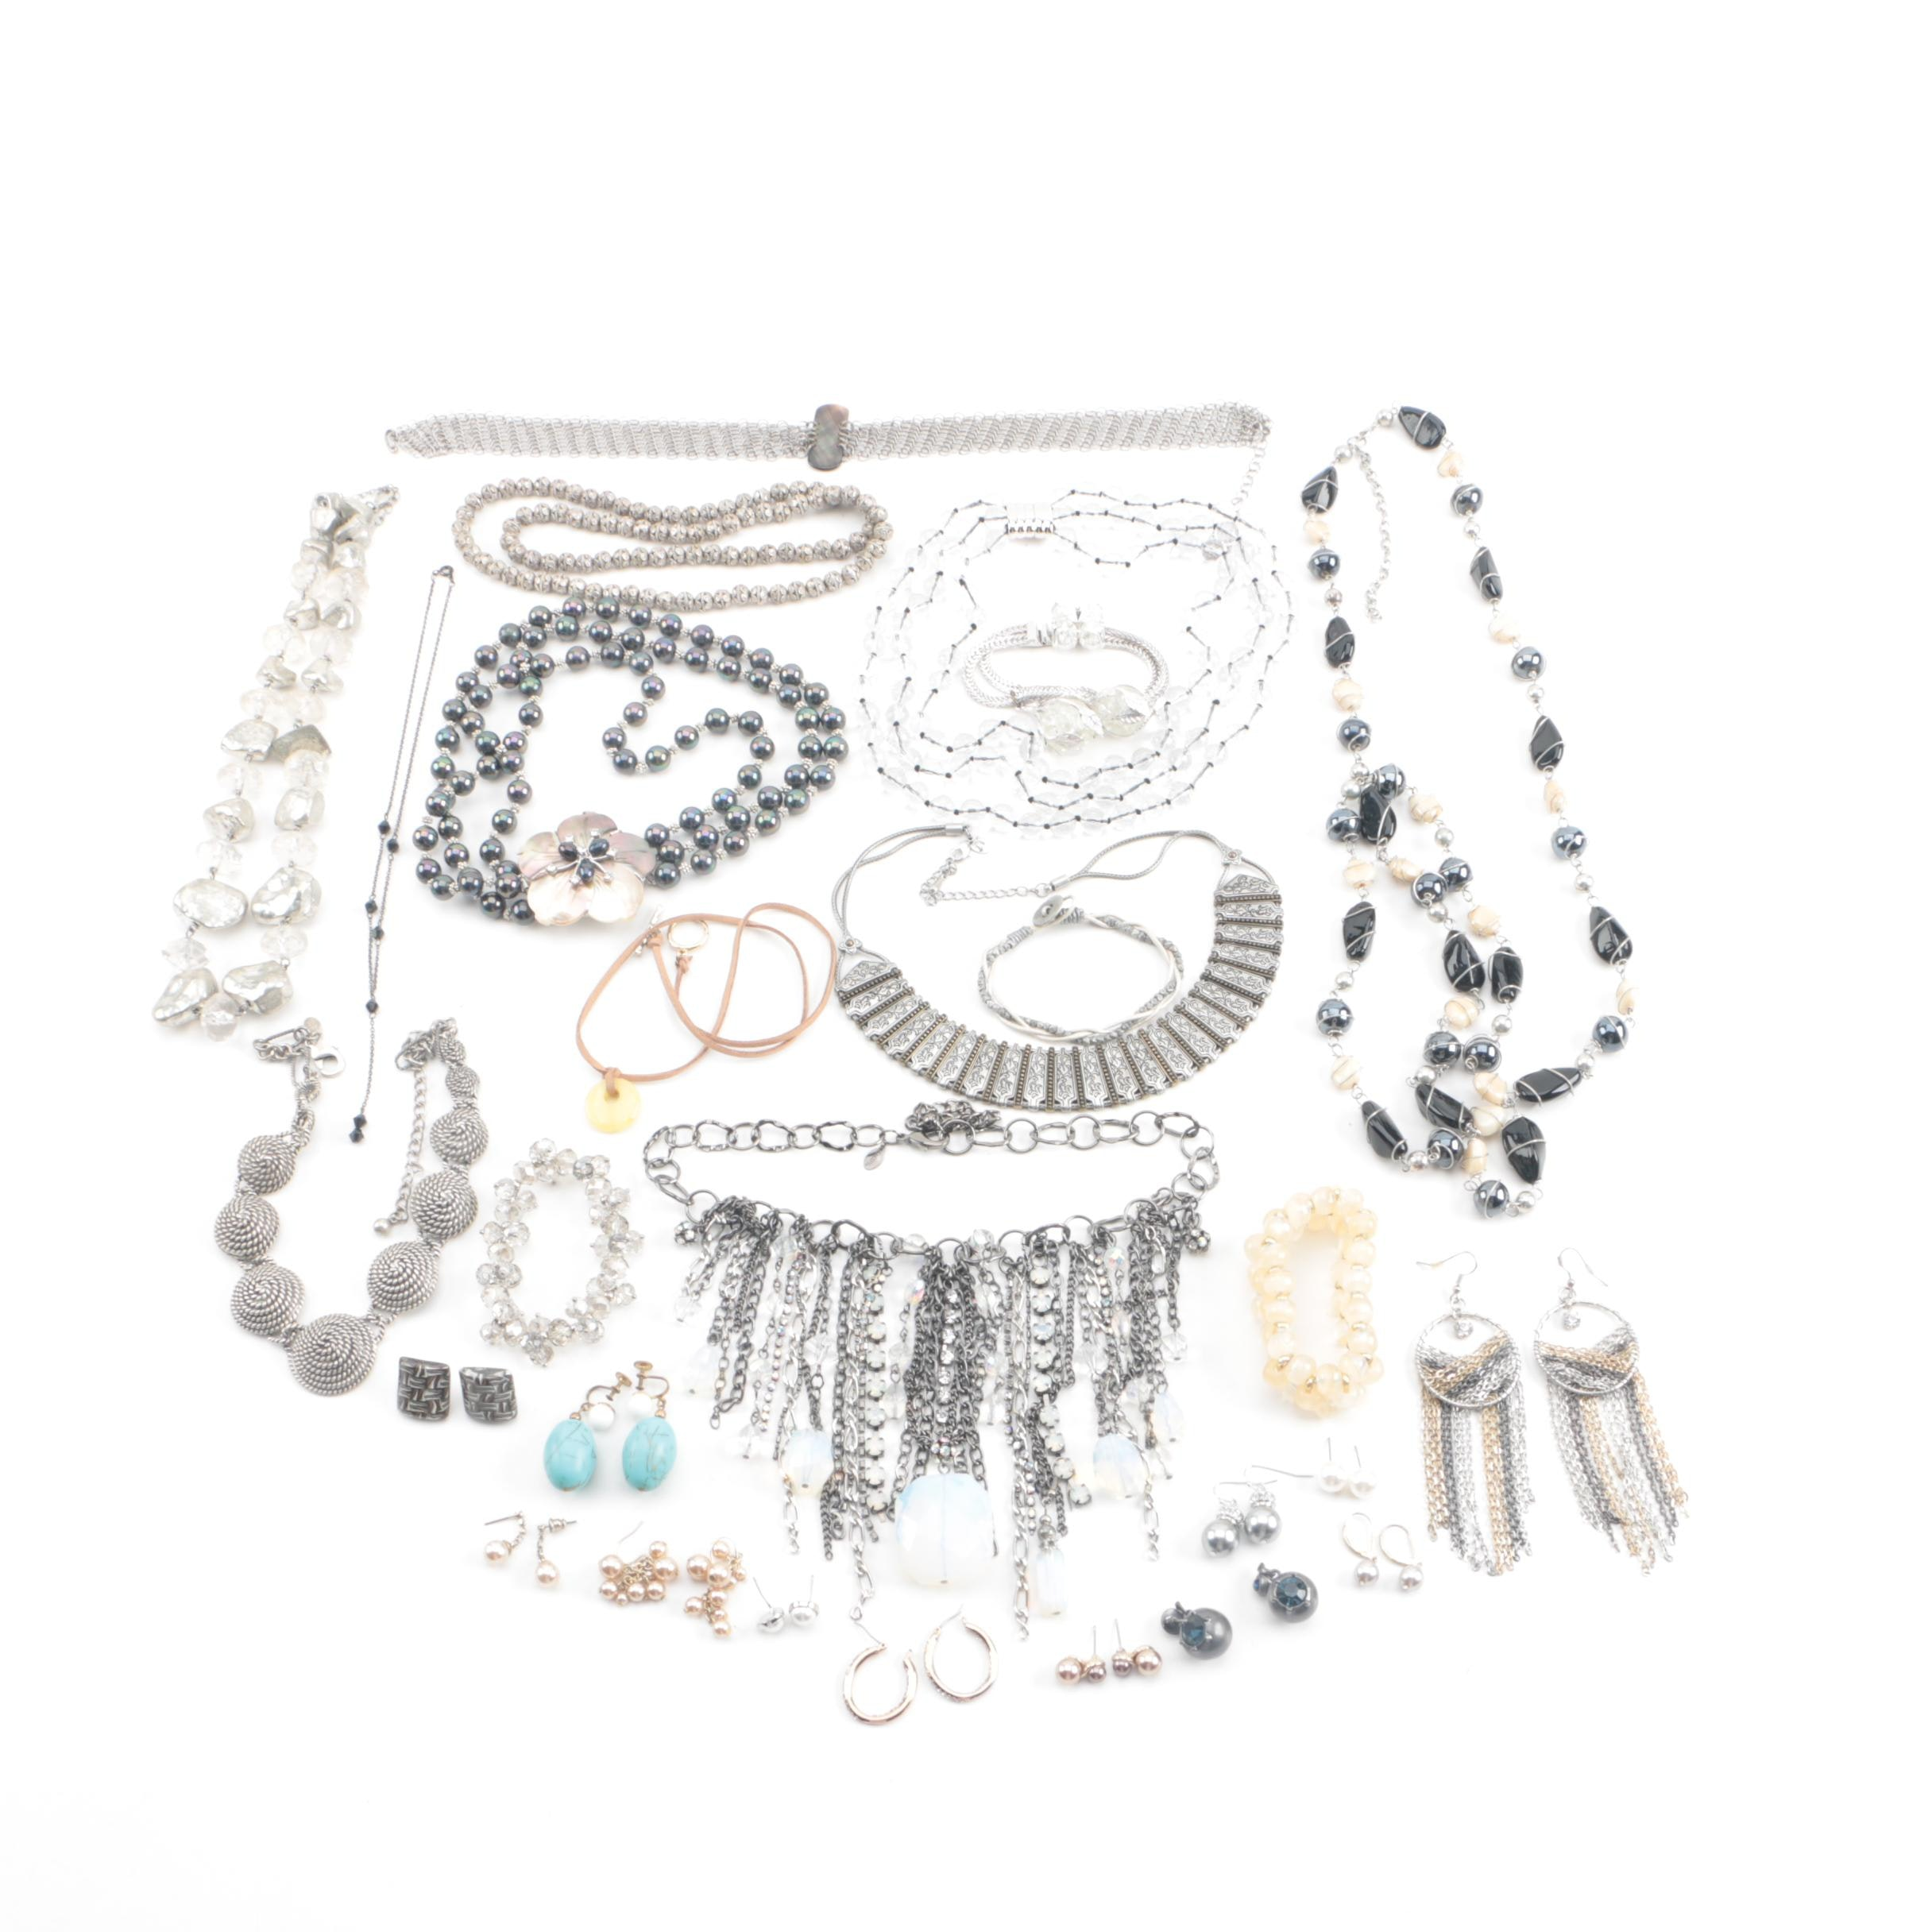 Jewelry Selection Including Imitation Pearl, Glass, Mother of Pearl and Enamel